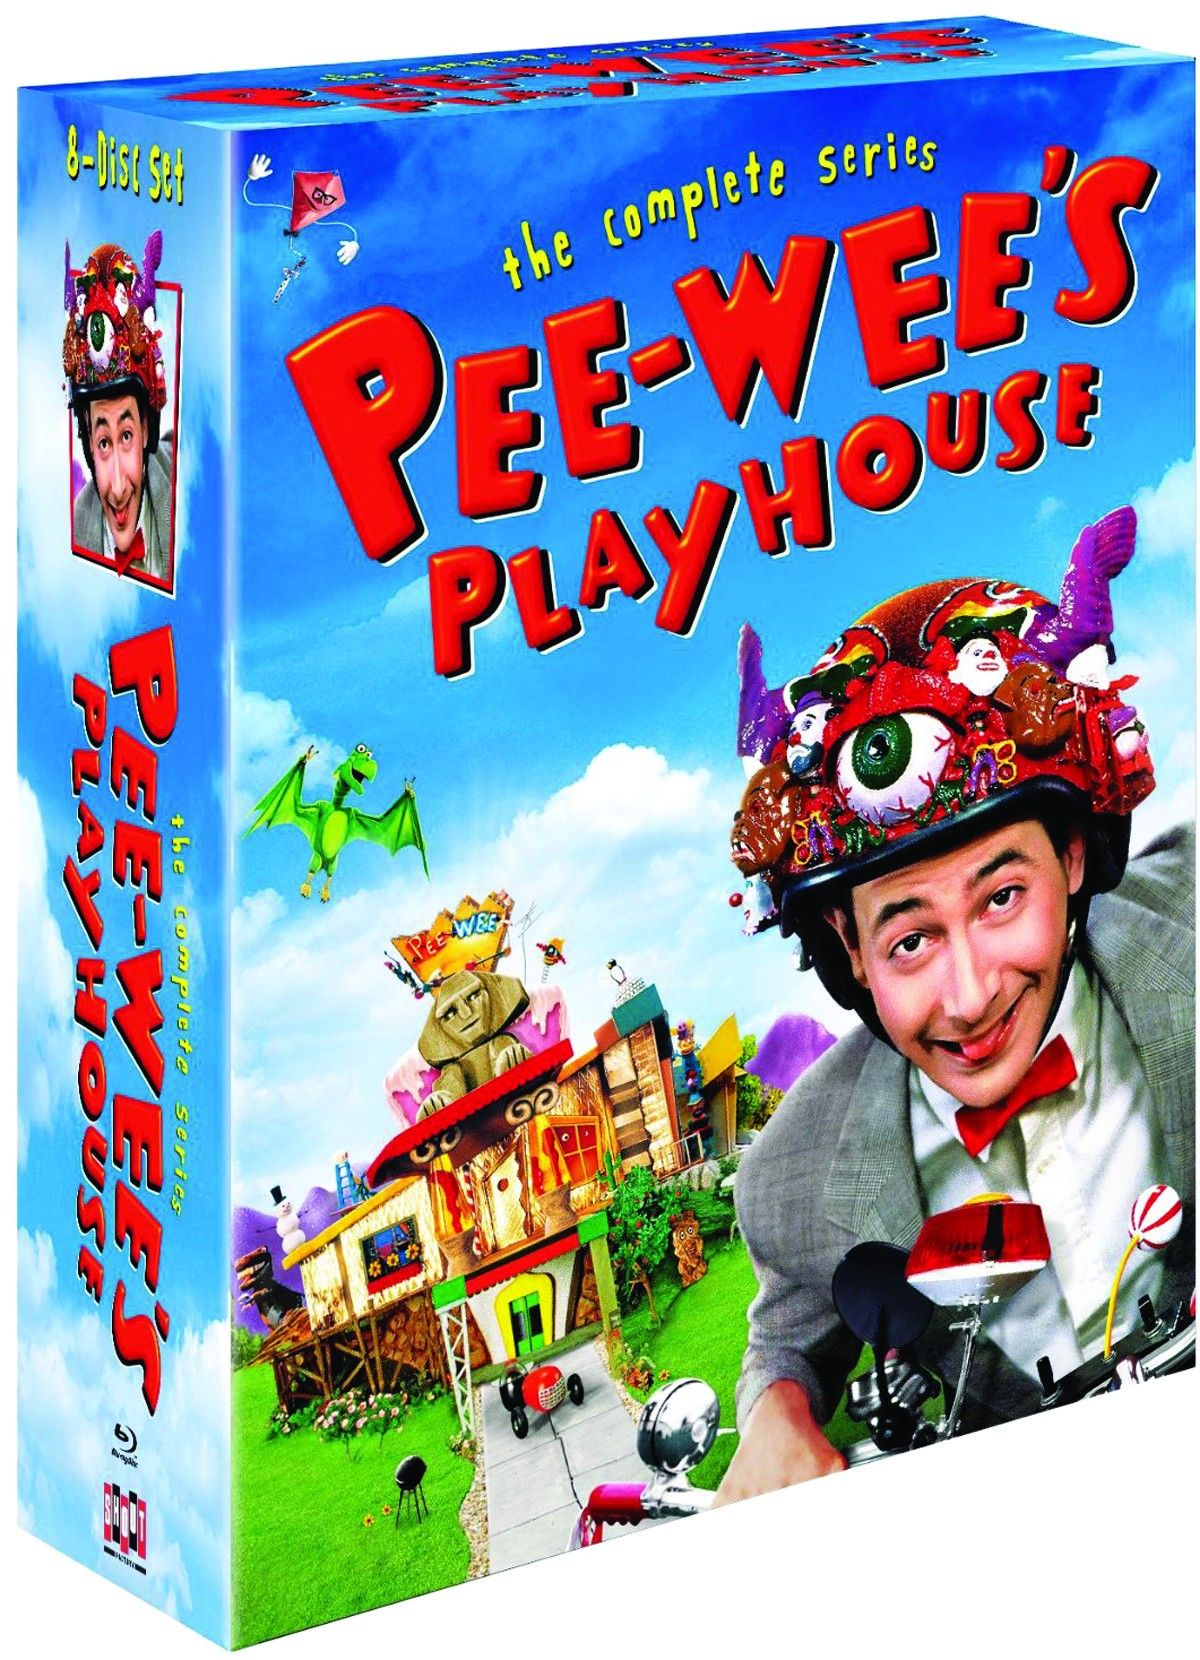 peeweeplayhouse.jpg